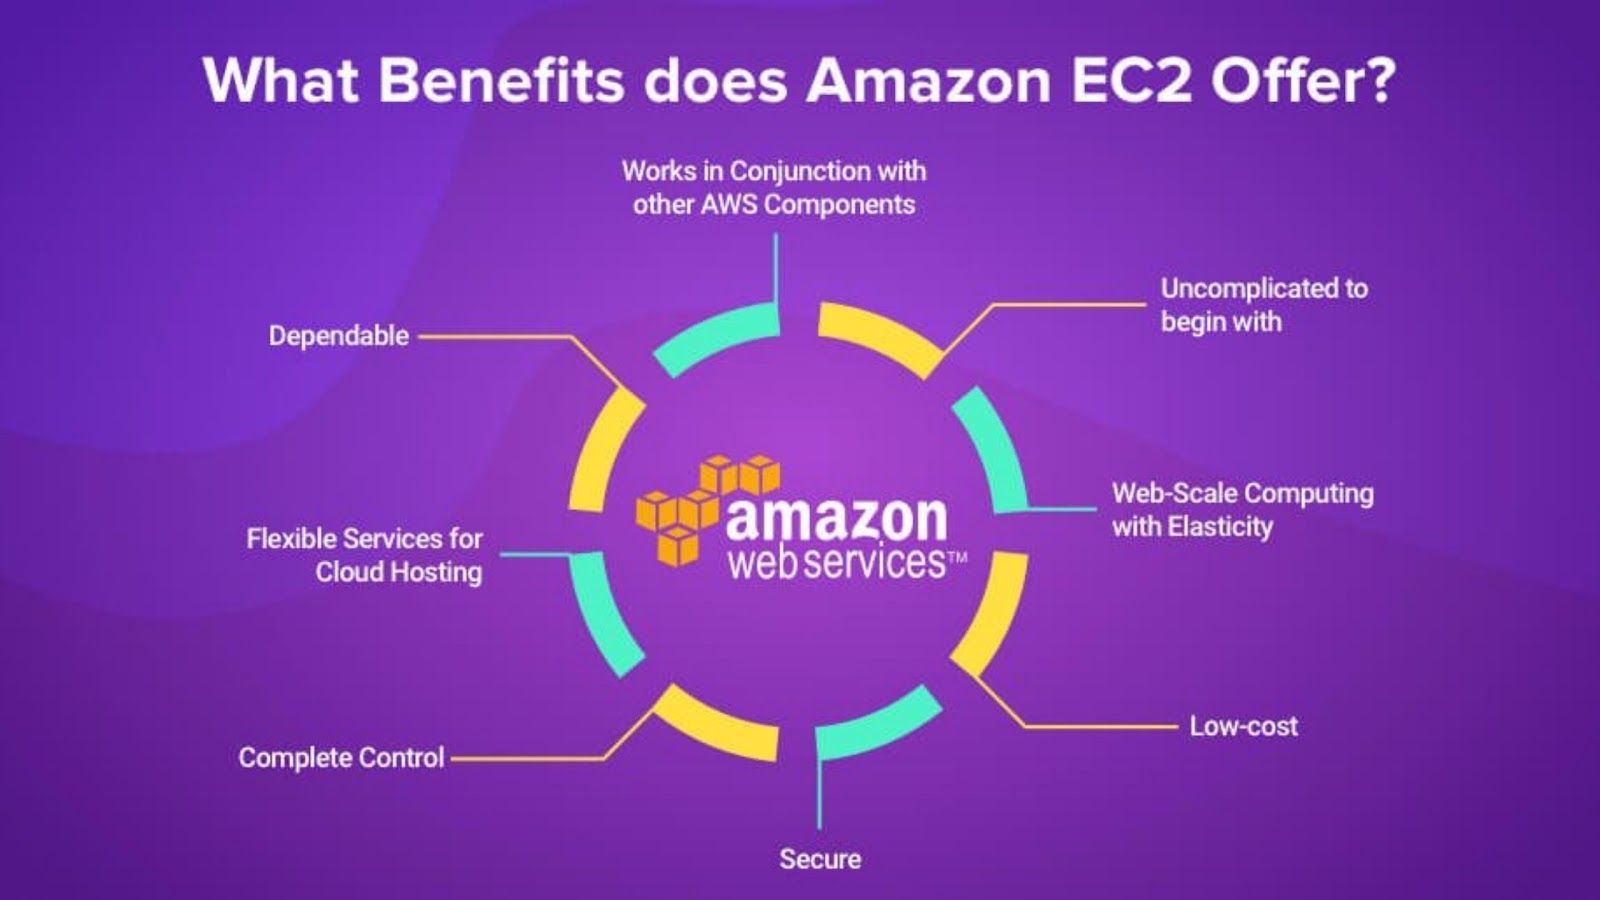 what Benefits does Amazon EC2 Offer?